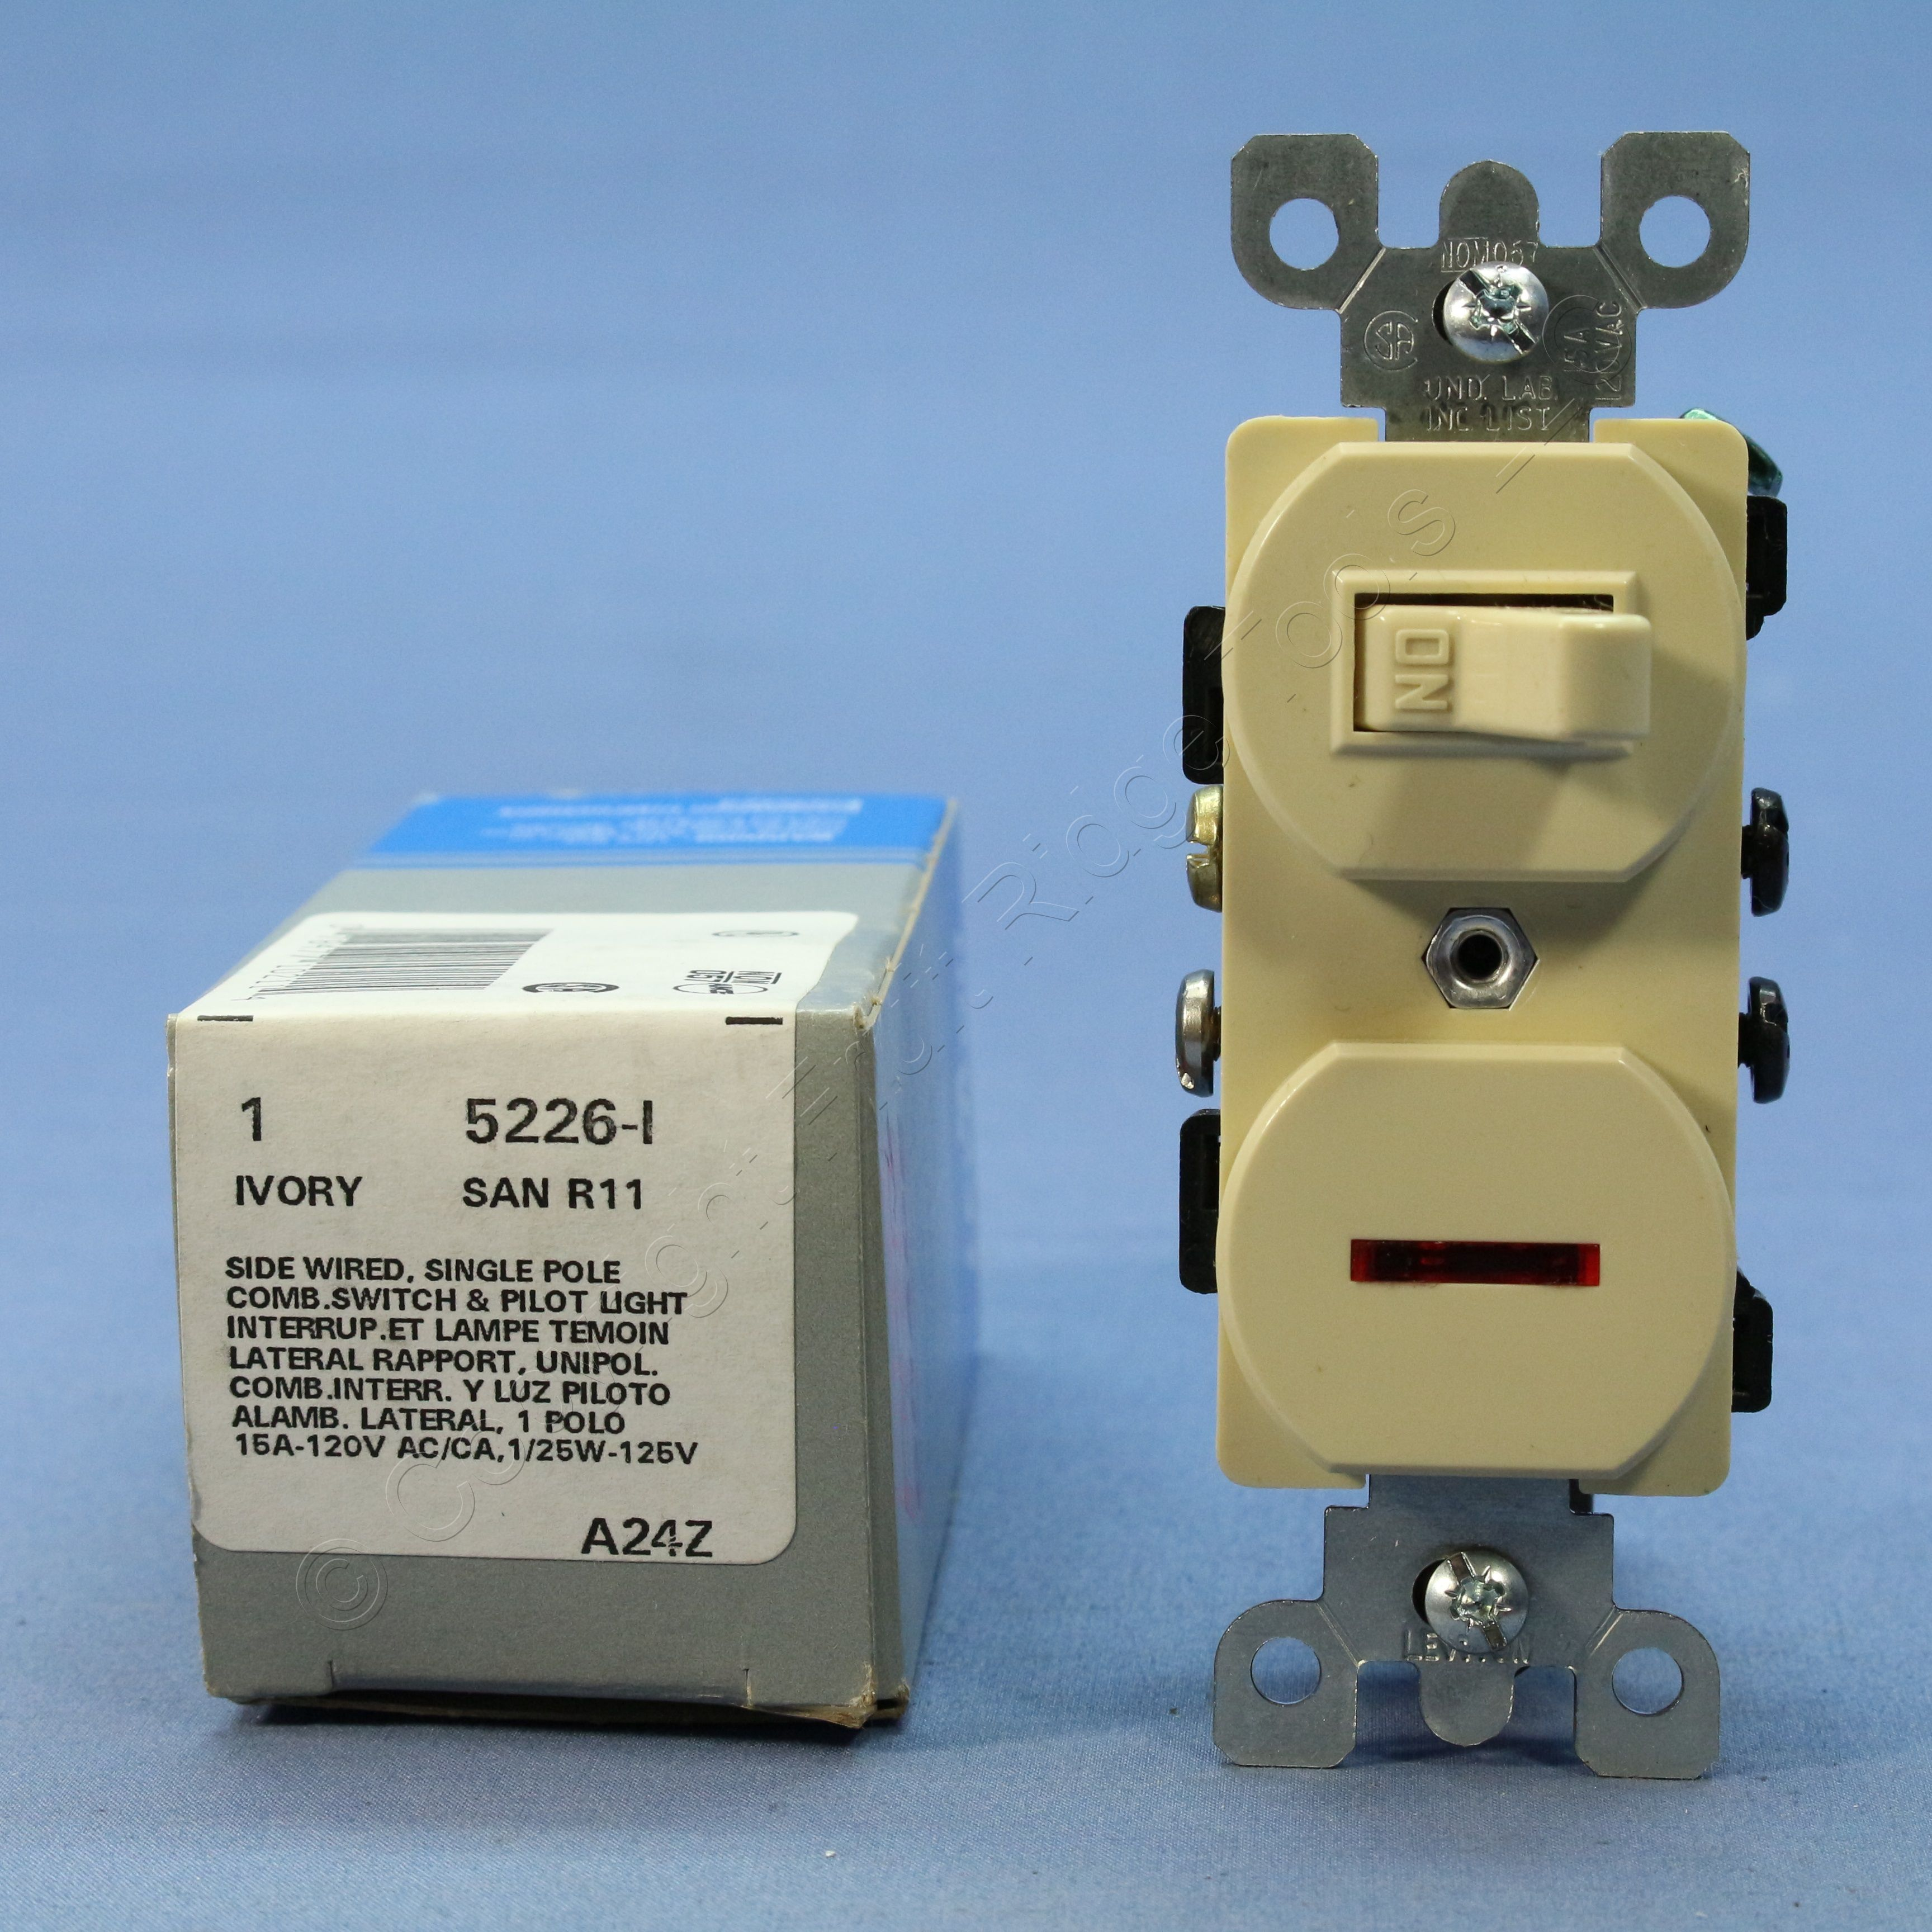 3 way switch with pilot light diagram dsl wall jack wiring leviton combination 5241